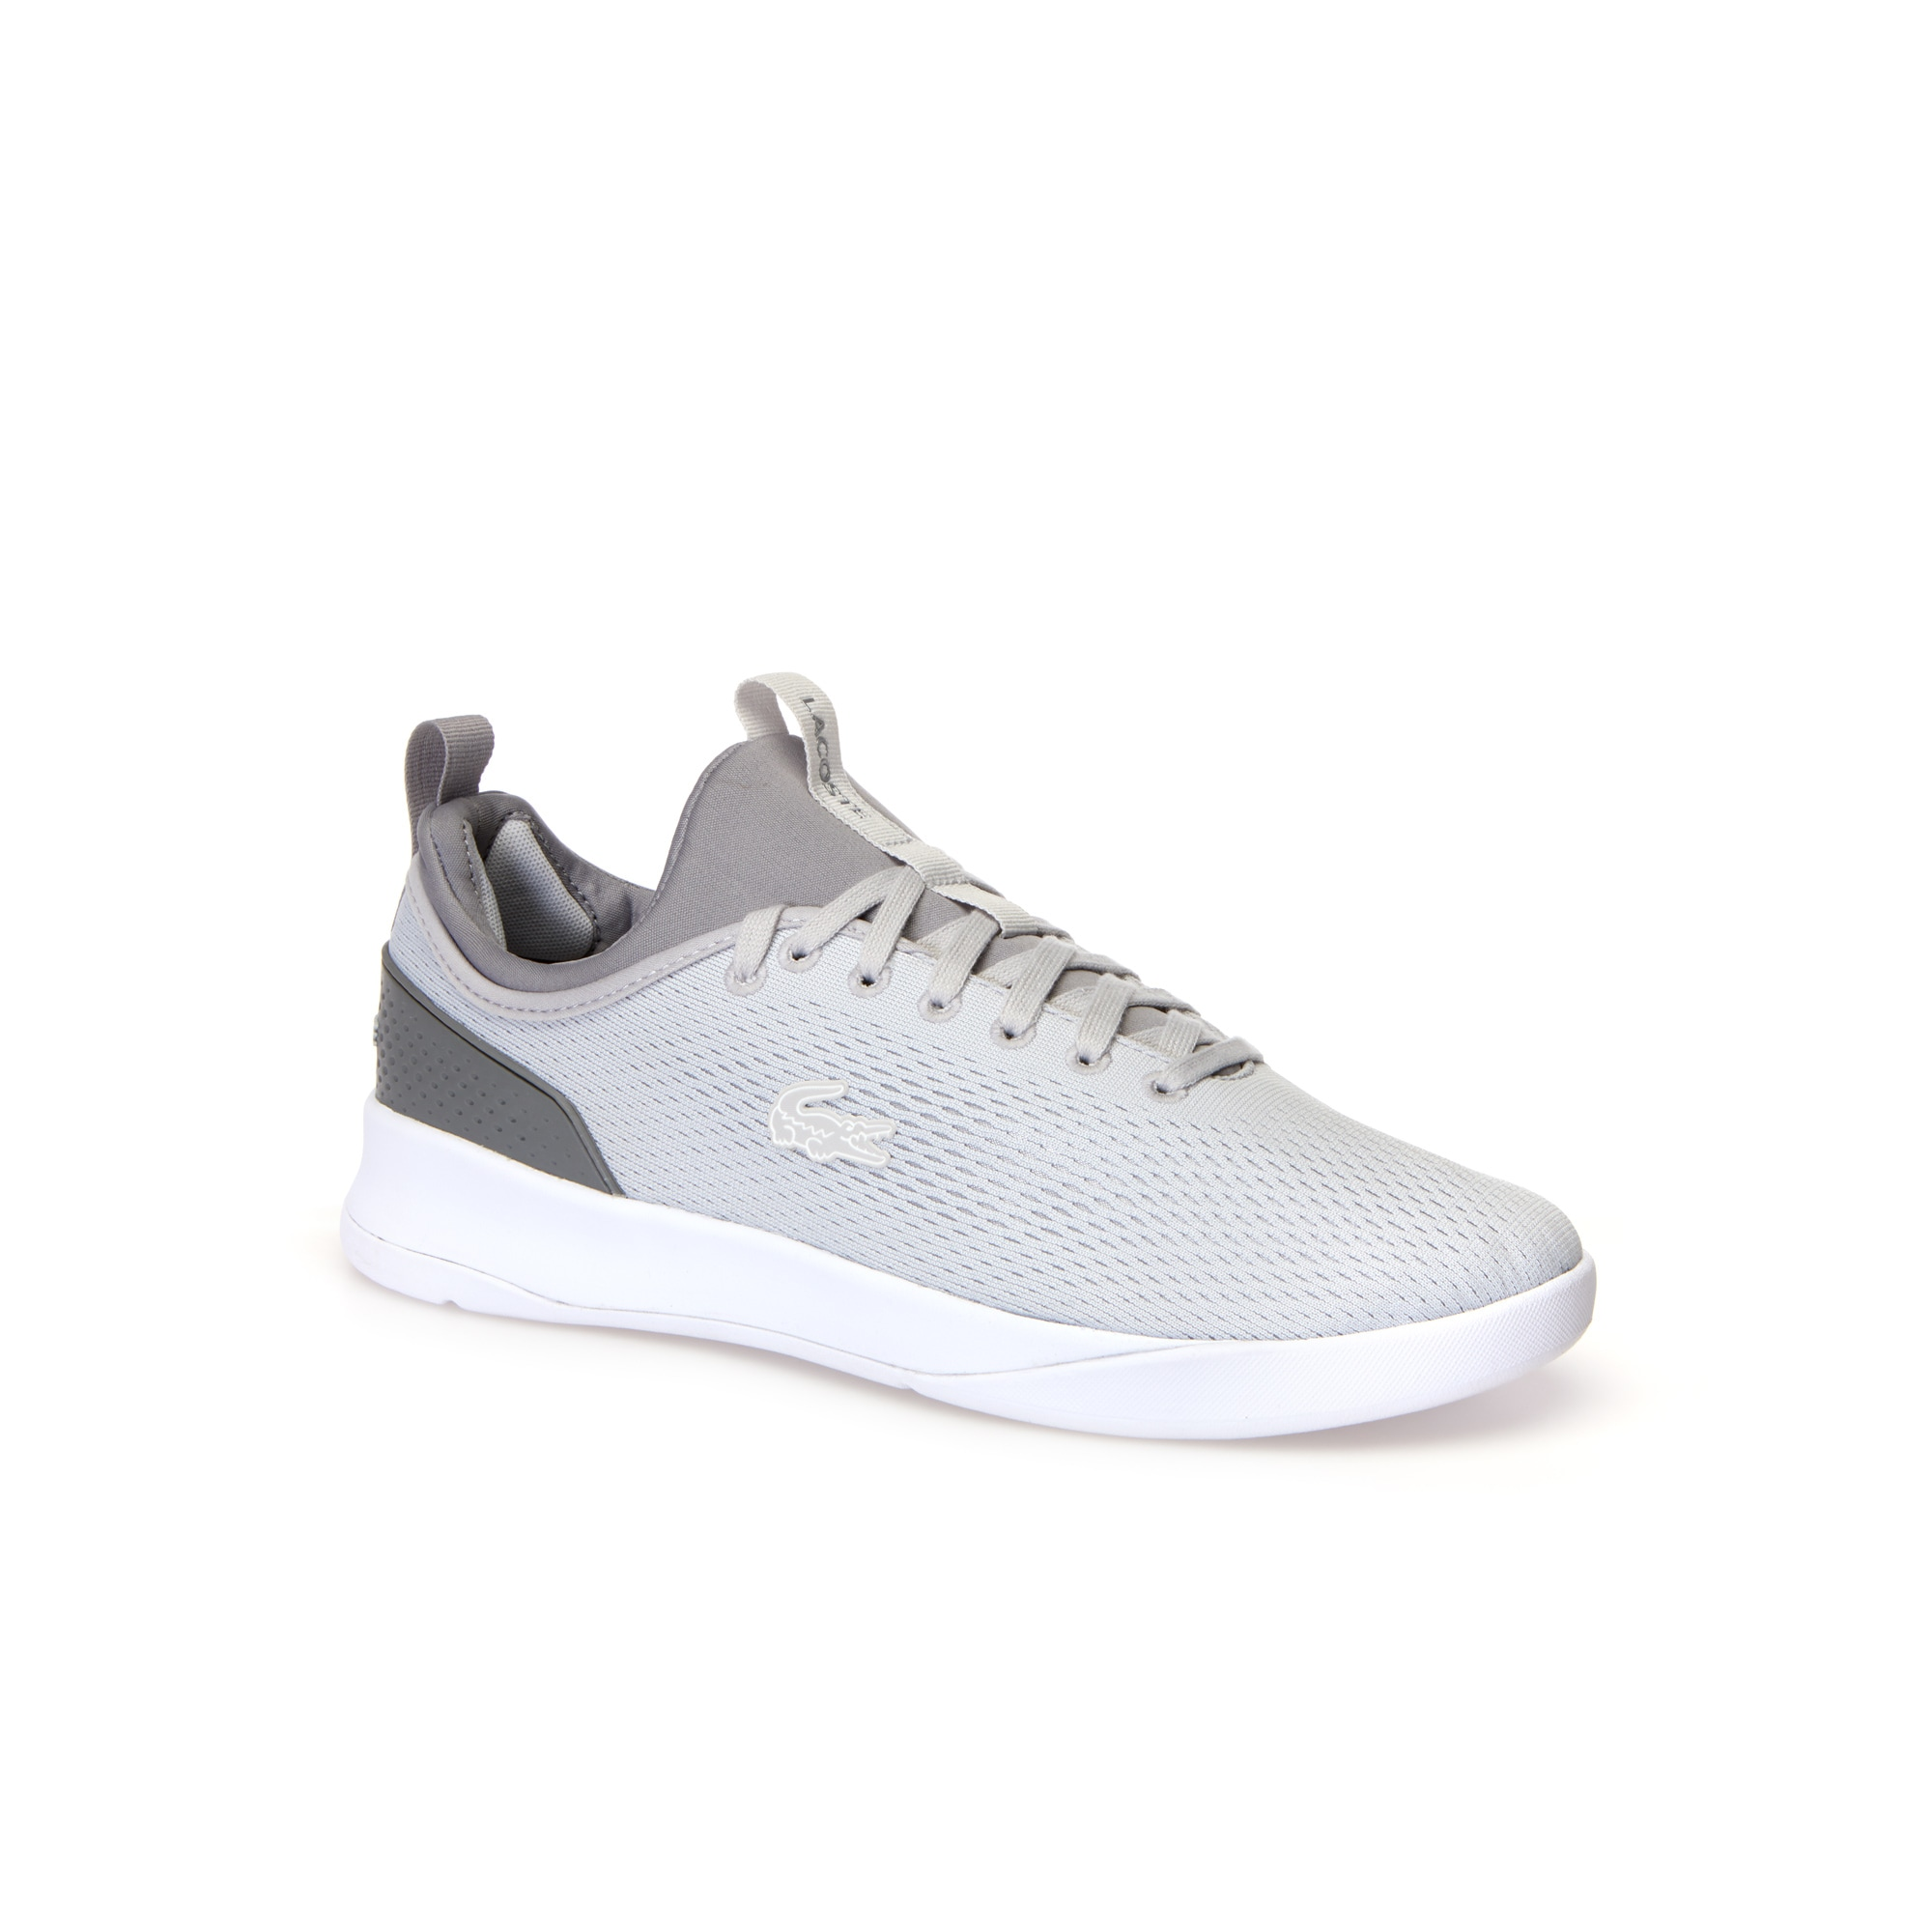 Men's LT Spirit SPORT 2.0 Mesh Trainers